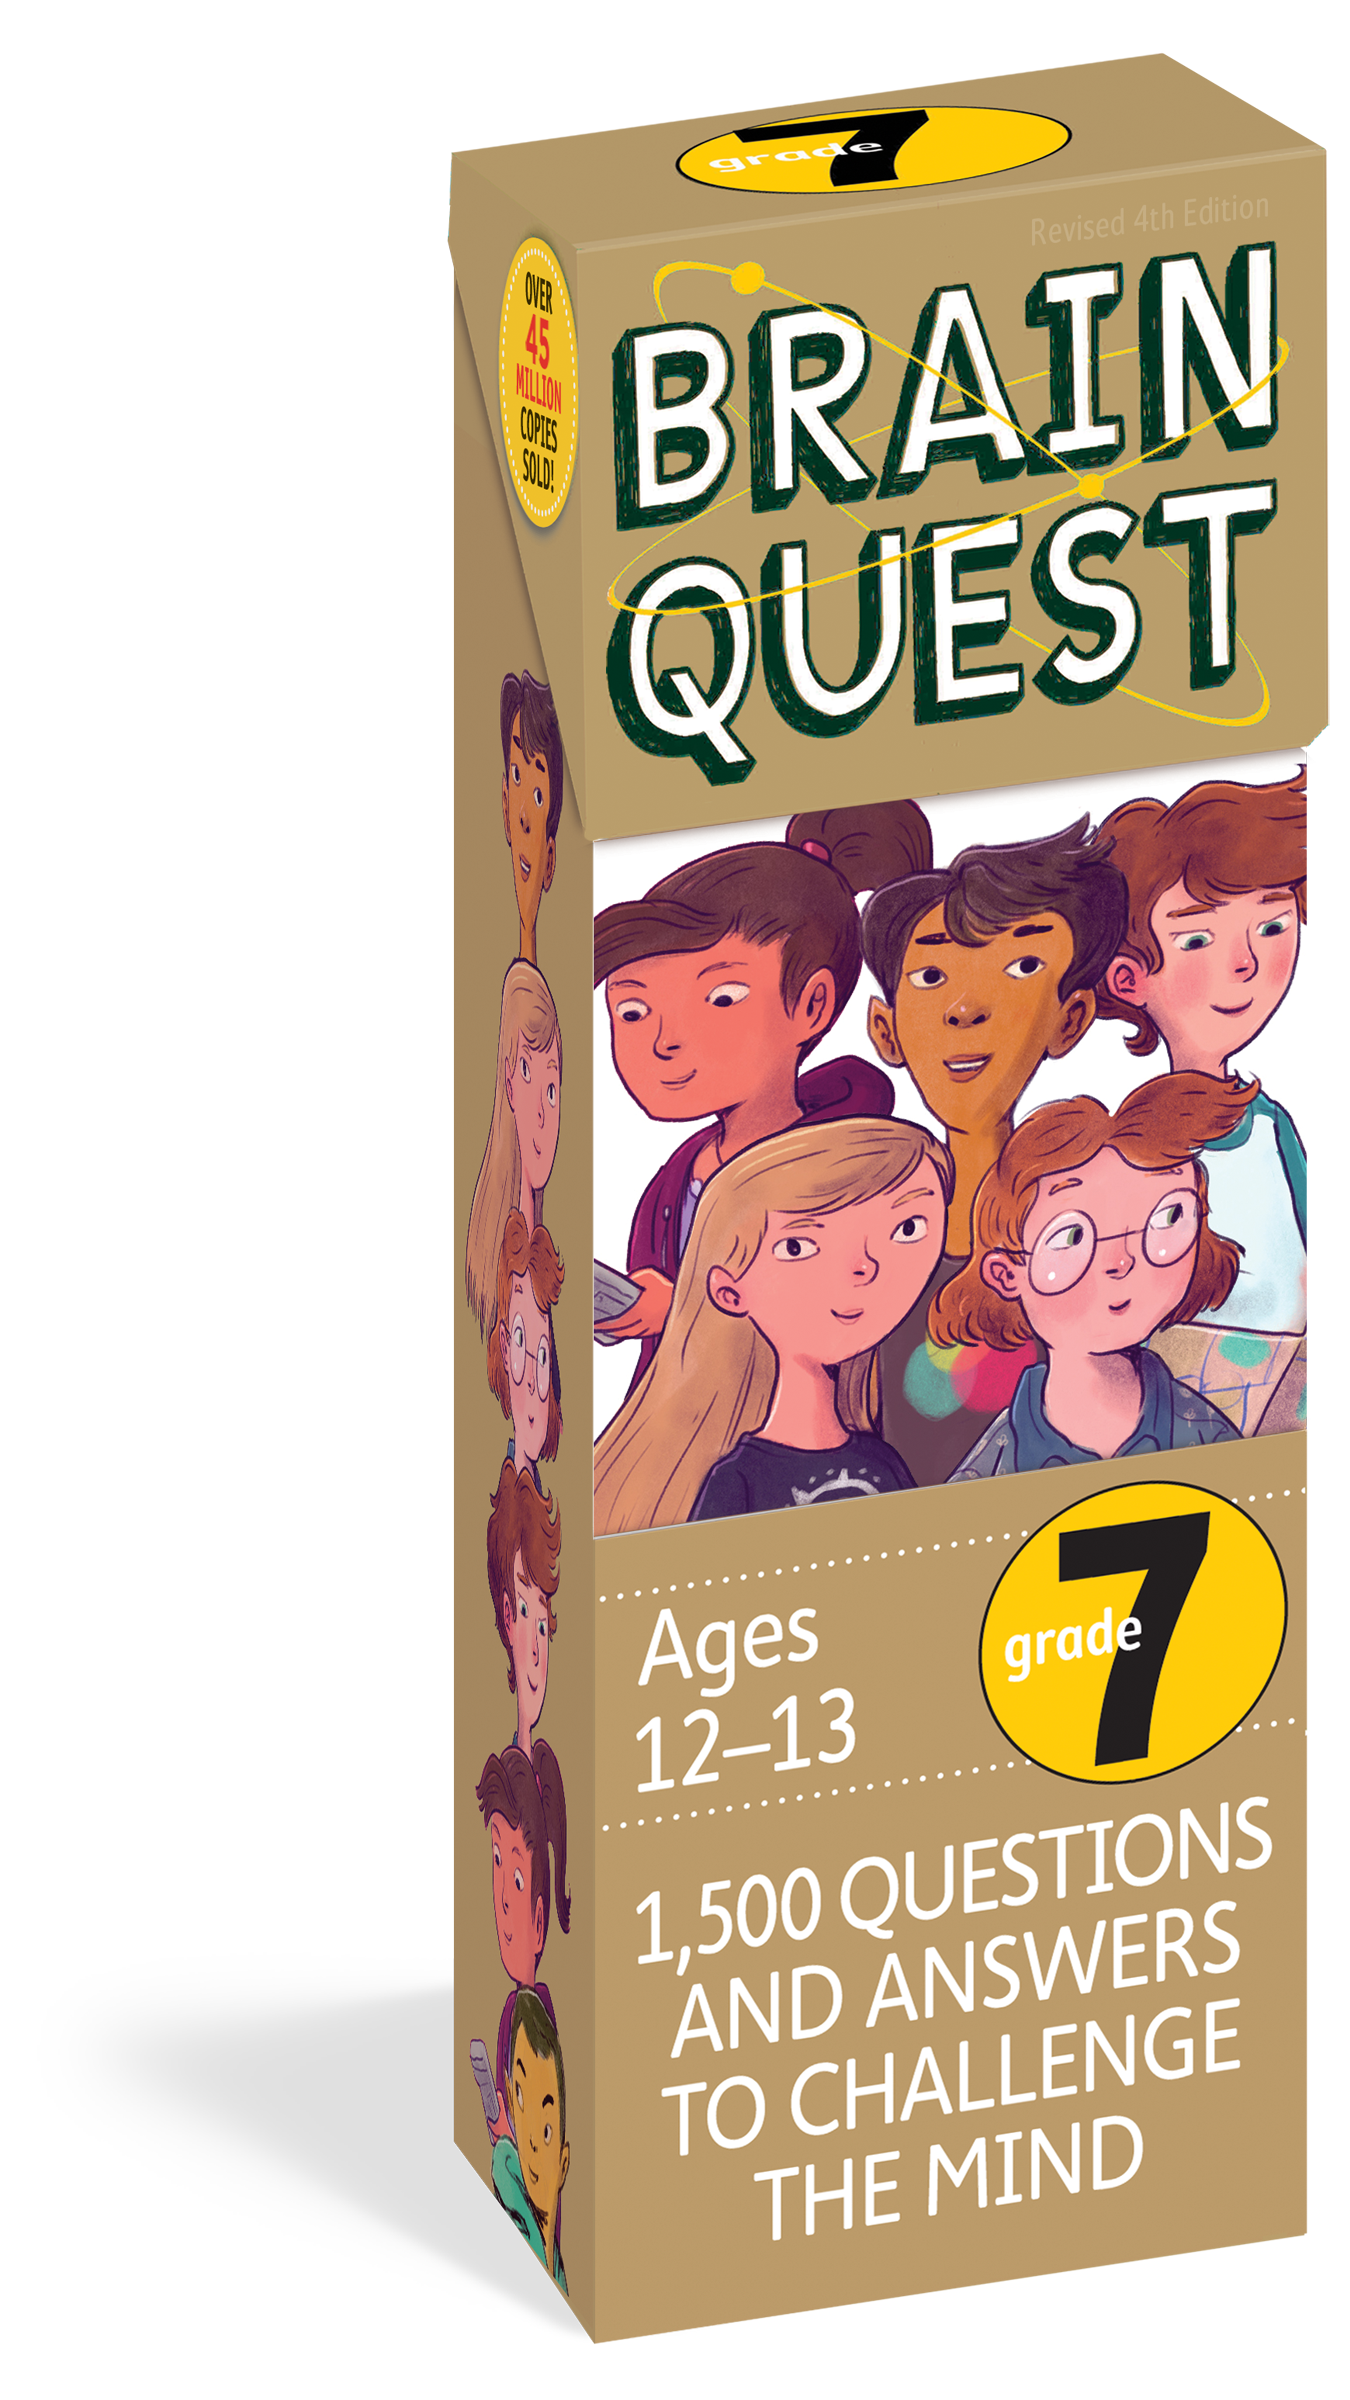 Brain Quest Grade 7, revised 4th edition - Workman Publishing